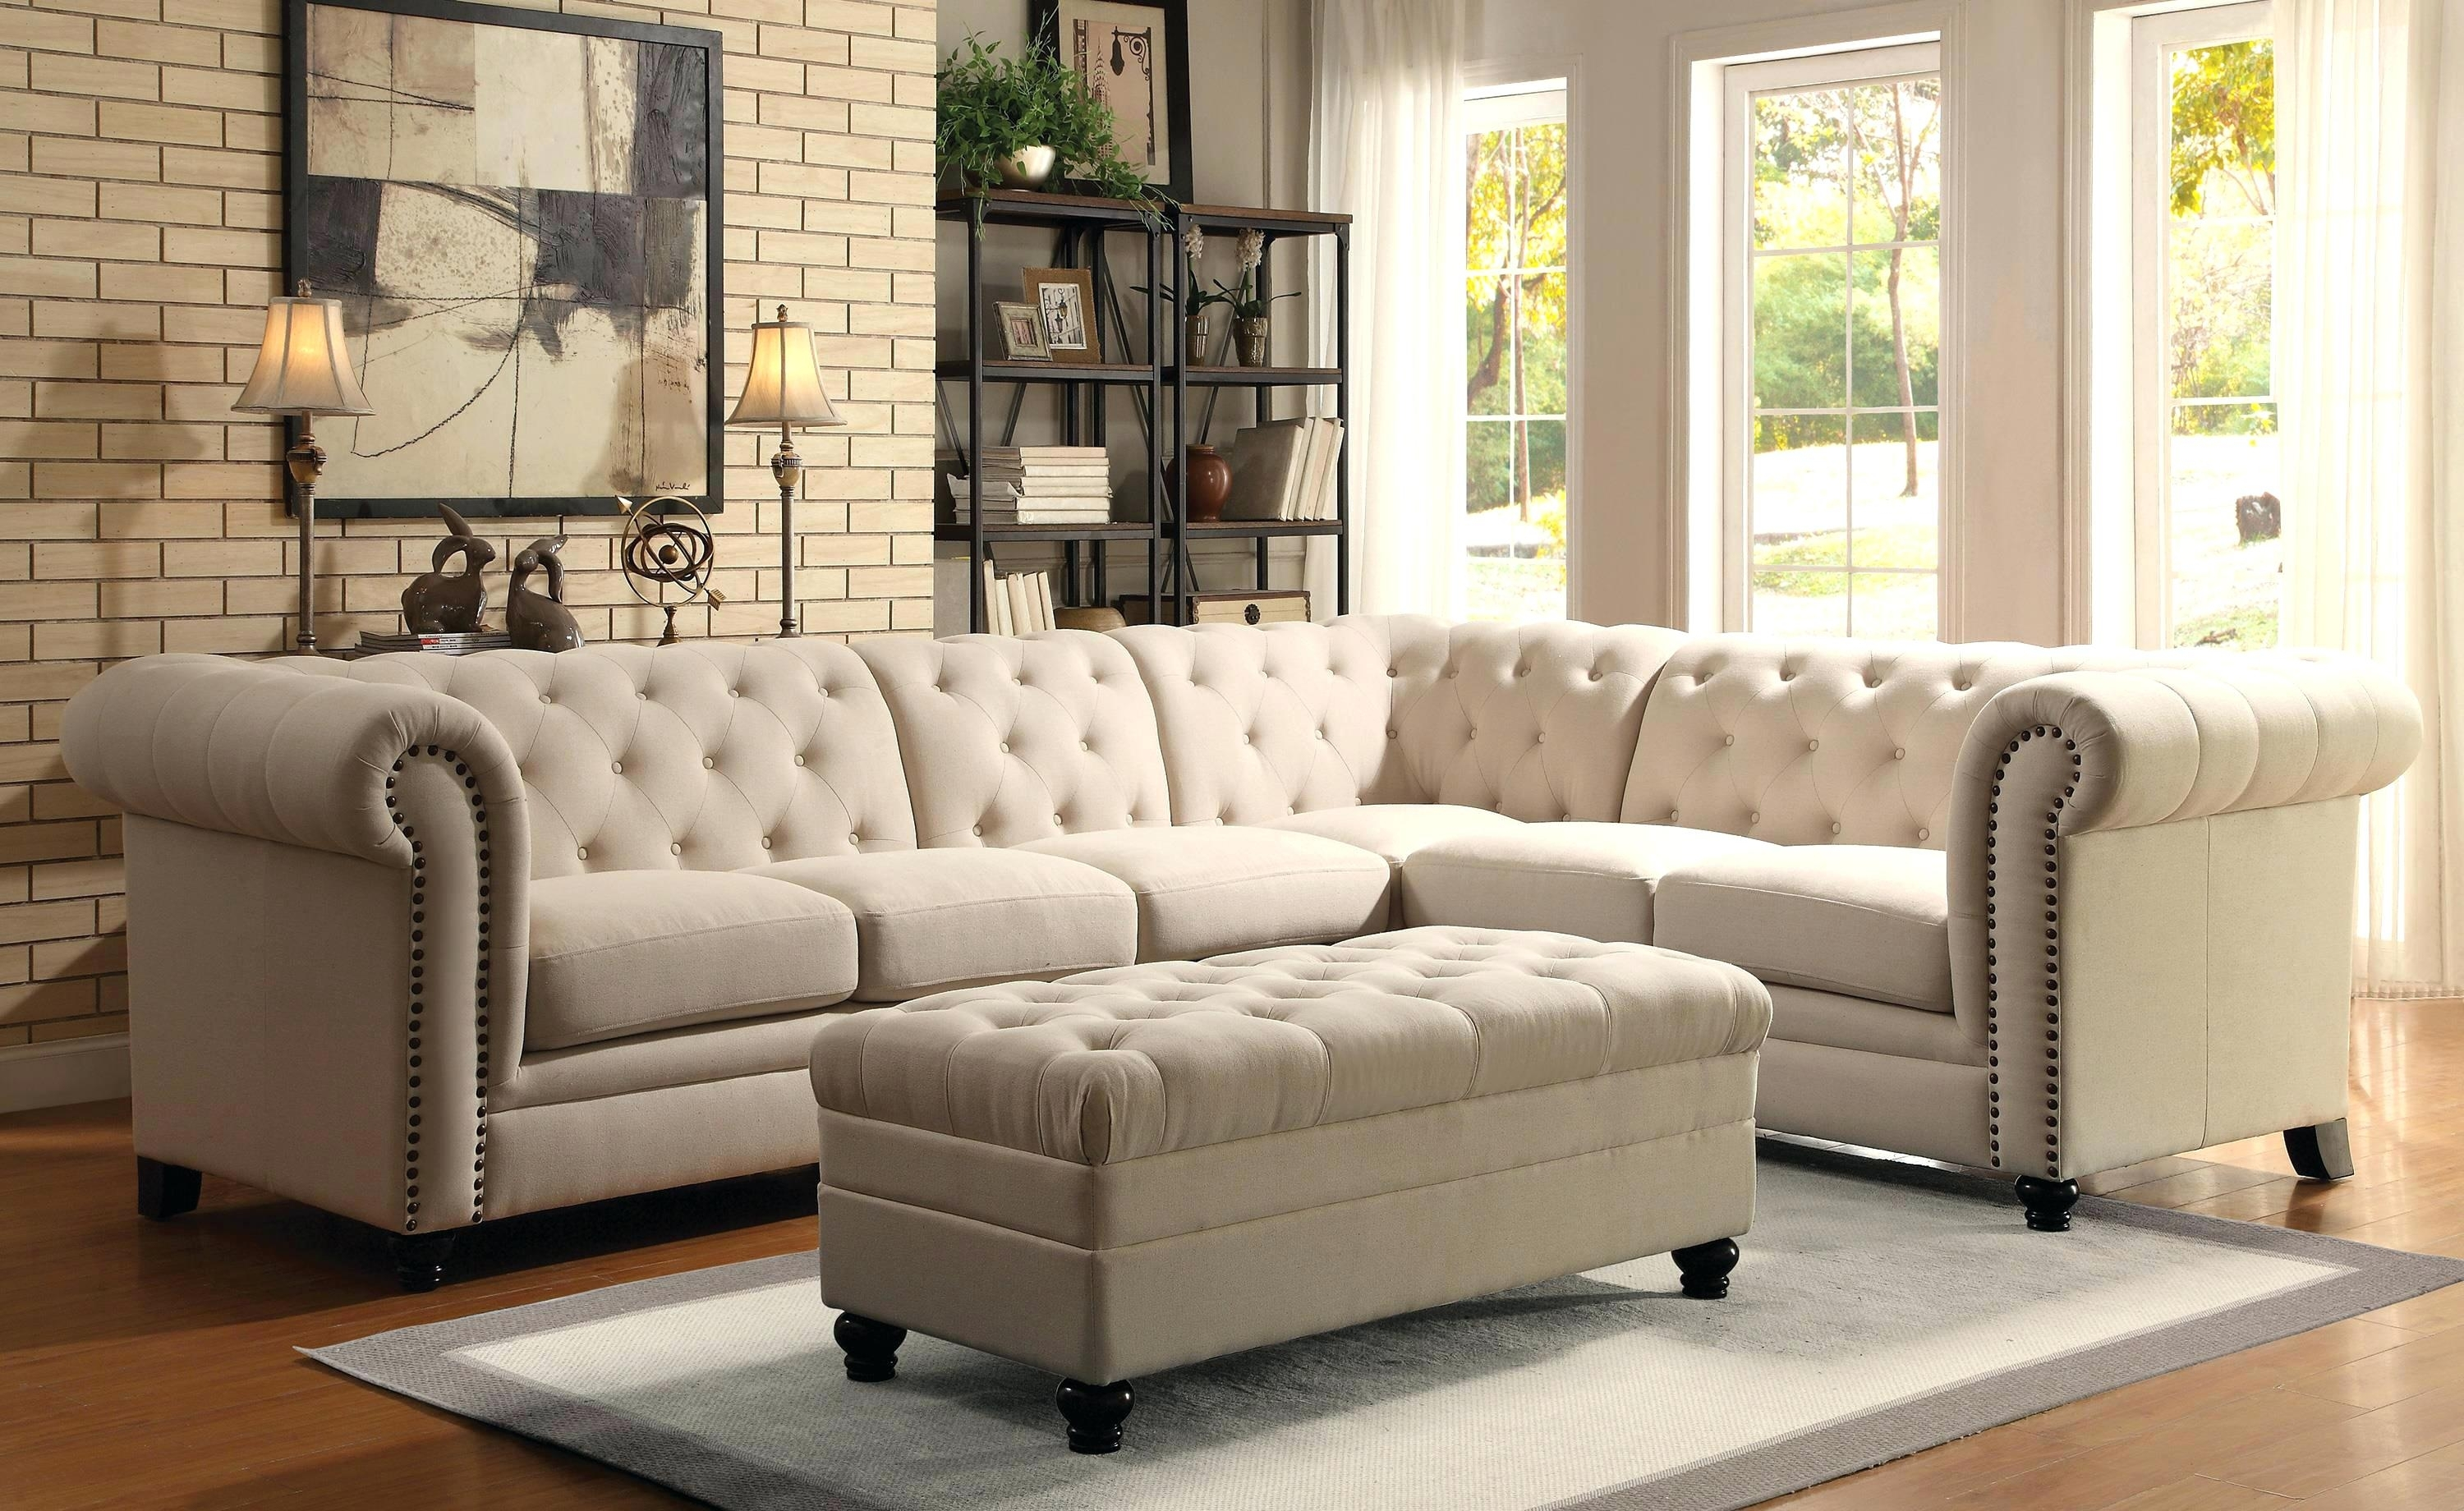 L Sectional Sofa Shad Sectiona 1810282 Slipcovers Walmart Covers Diy pertaining to London Ontario Sectional Sofas (Image 3 of 10)